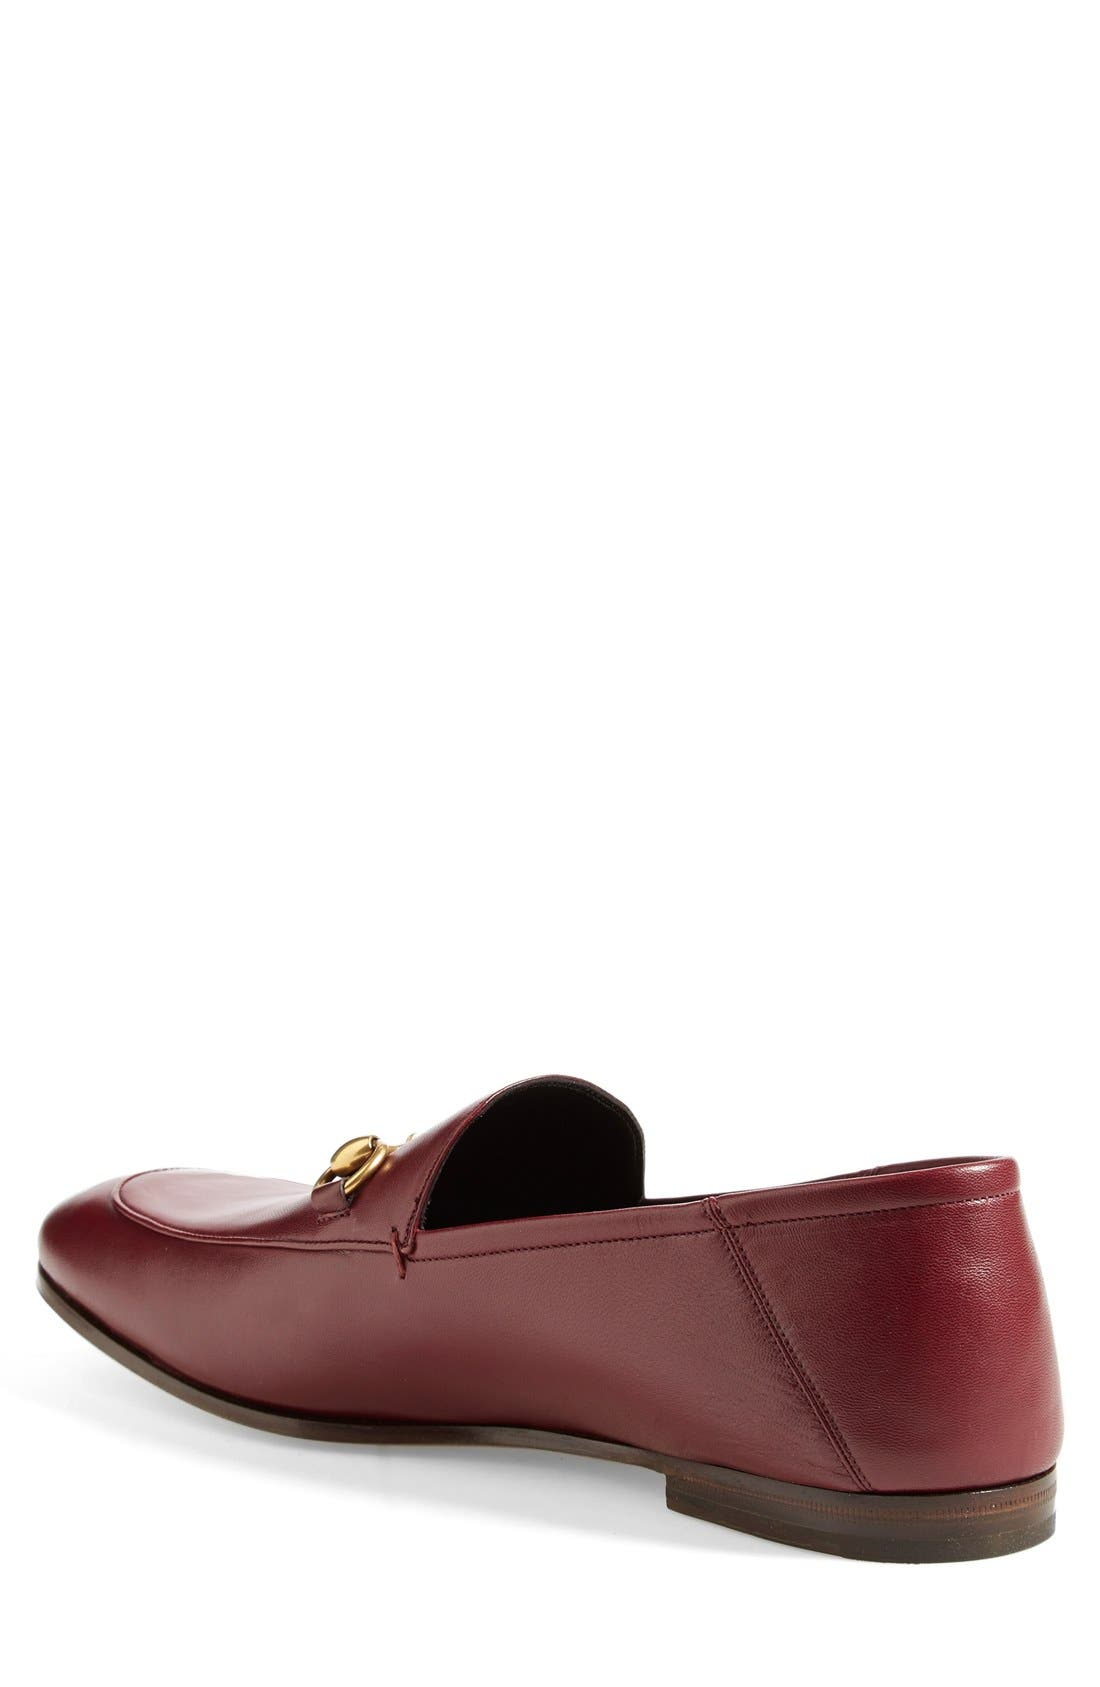 Brixton Leather Loafer,                             Alternate thumbnail 10, color,